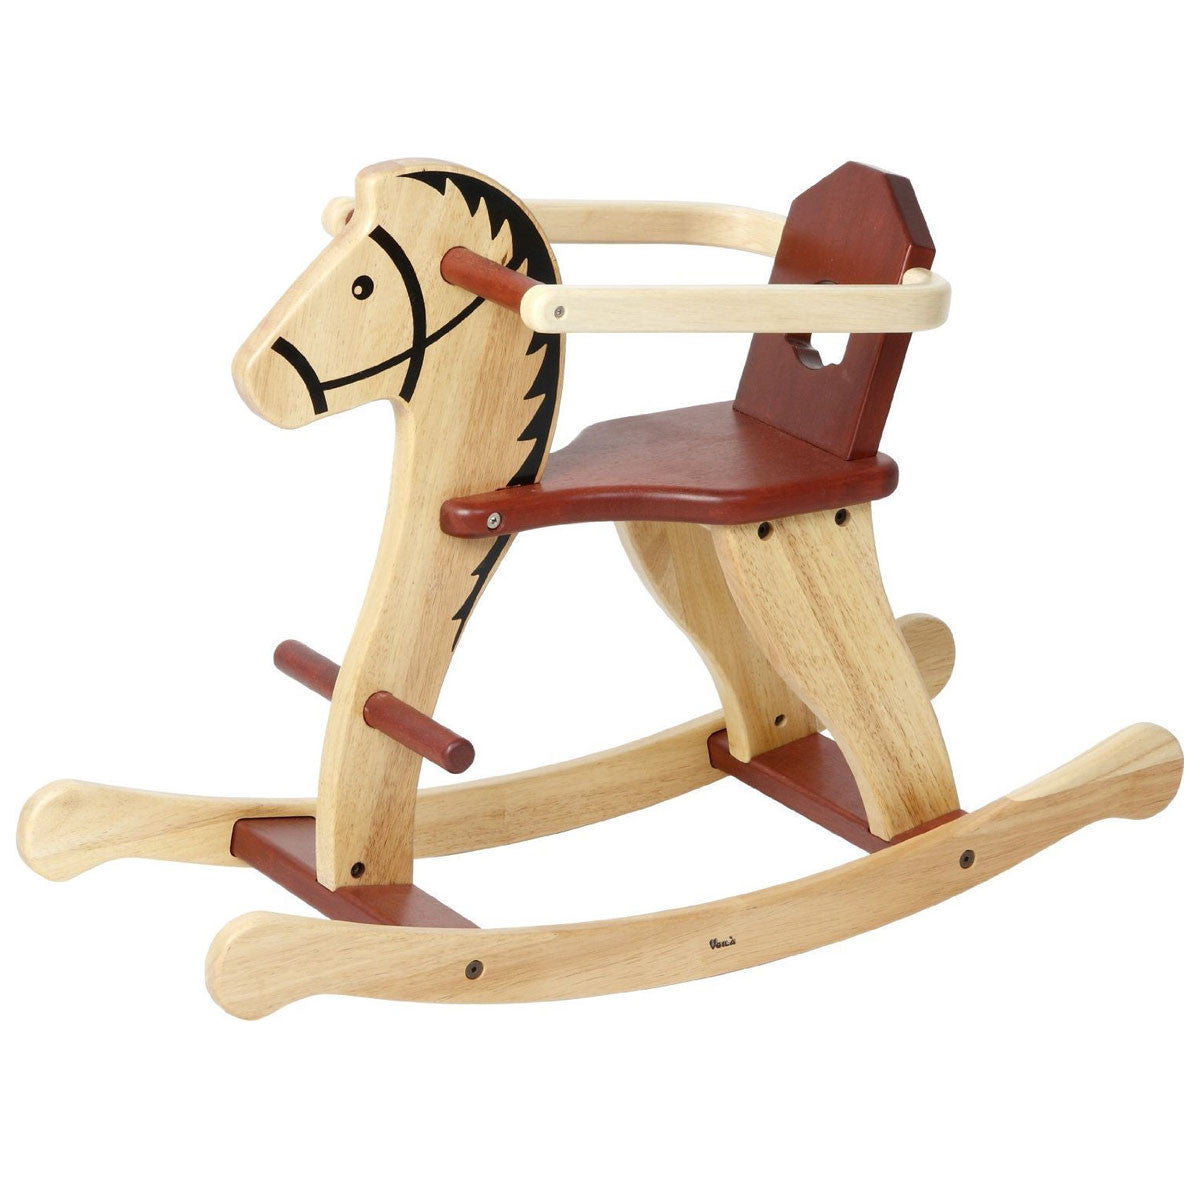 Shetland Wooden Rocking Horse Little Earth Nest Rocking Horses at Little Earth Nest Eco Shop